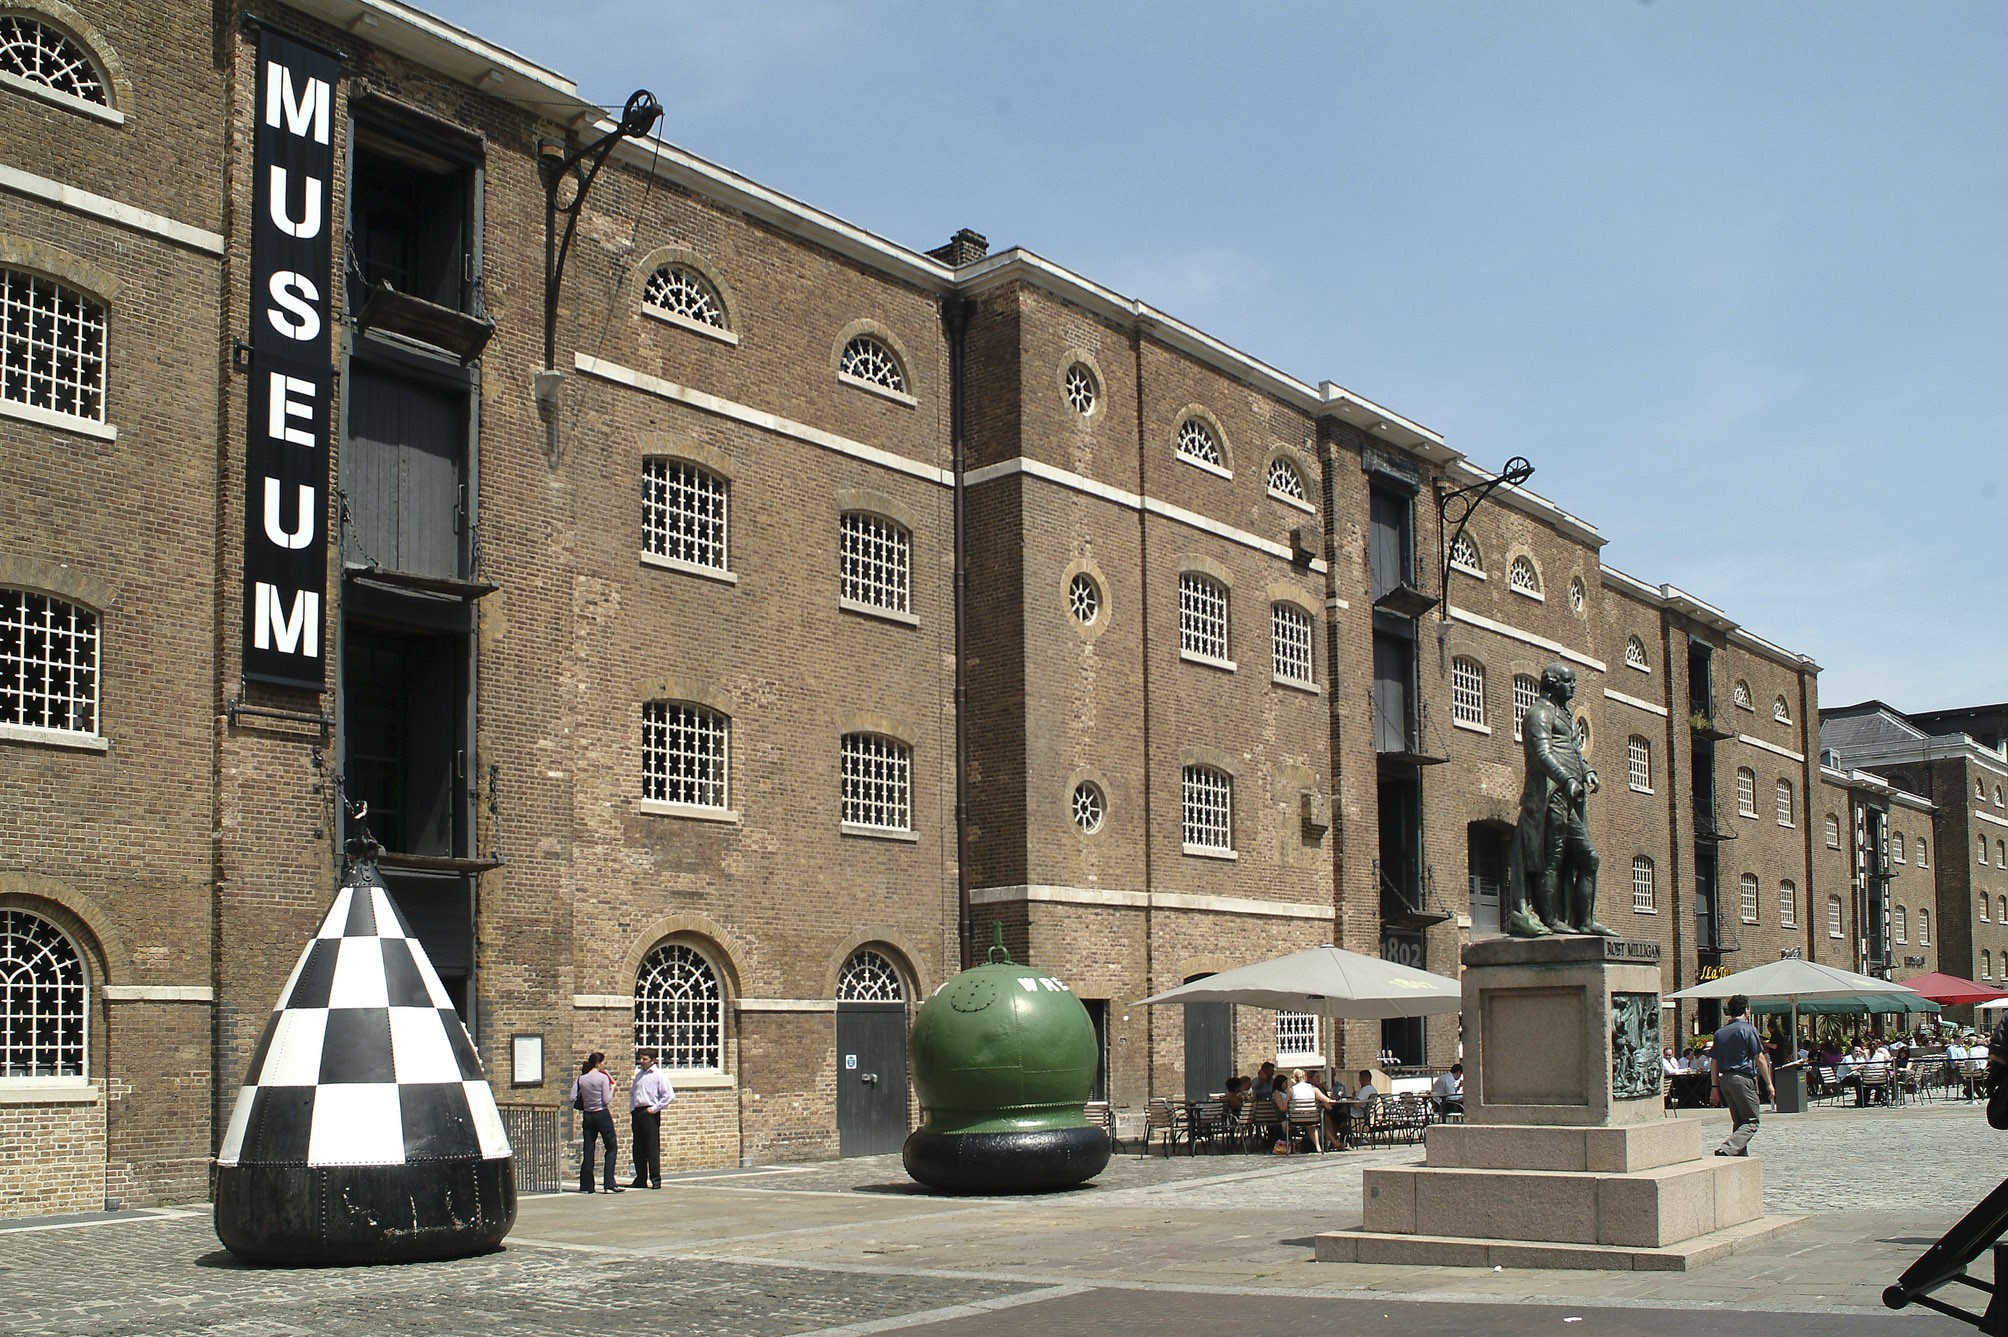 The Docklands Museum London, A Wonderful Day Out!